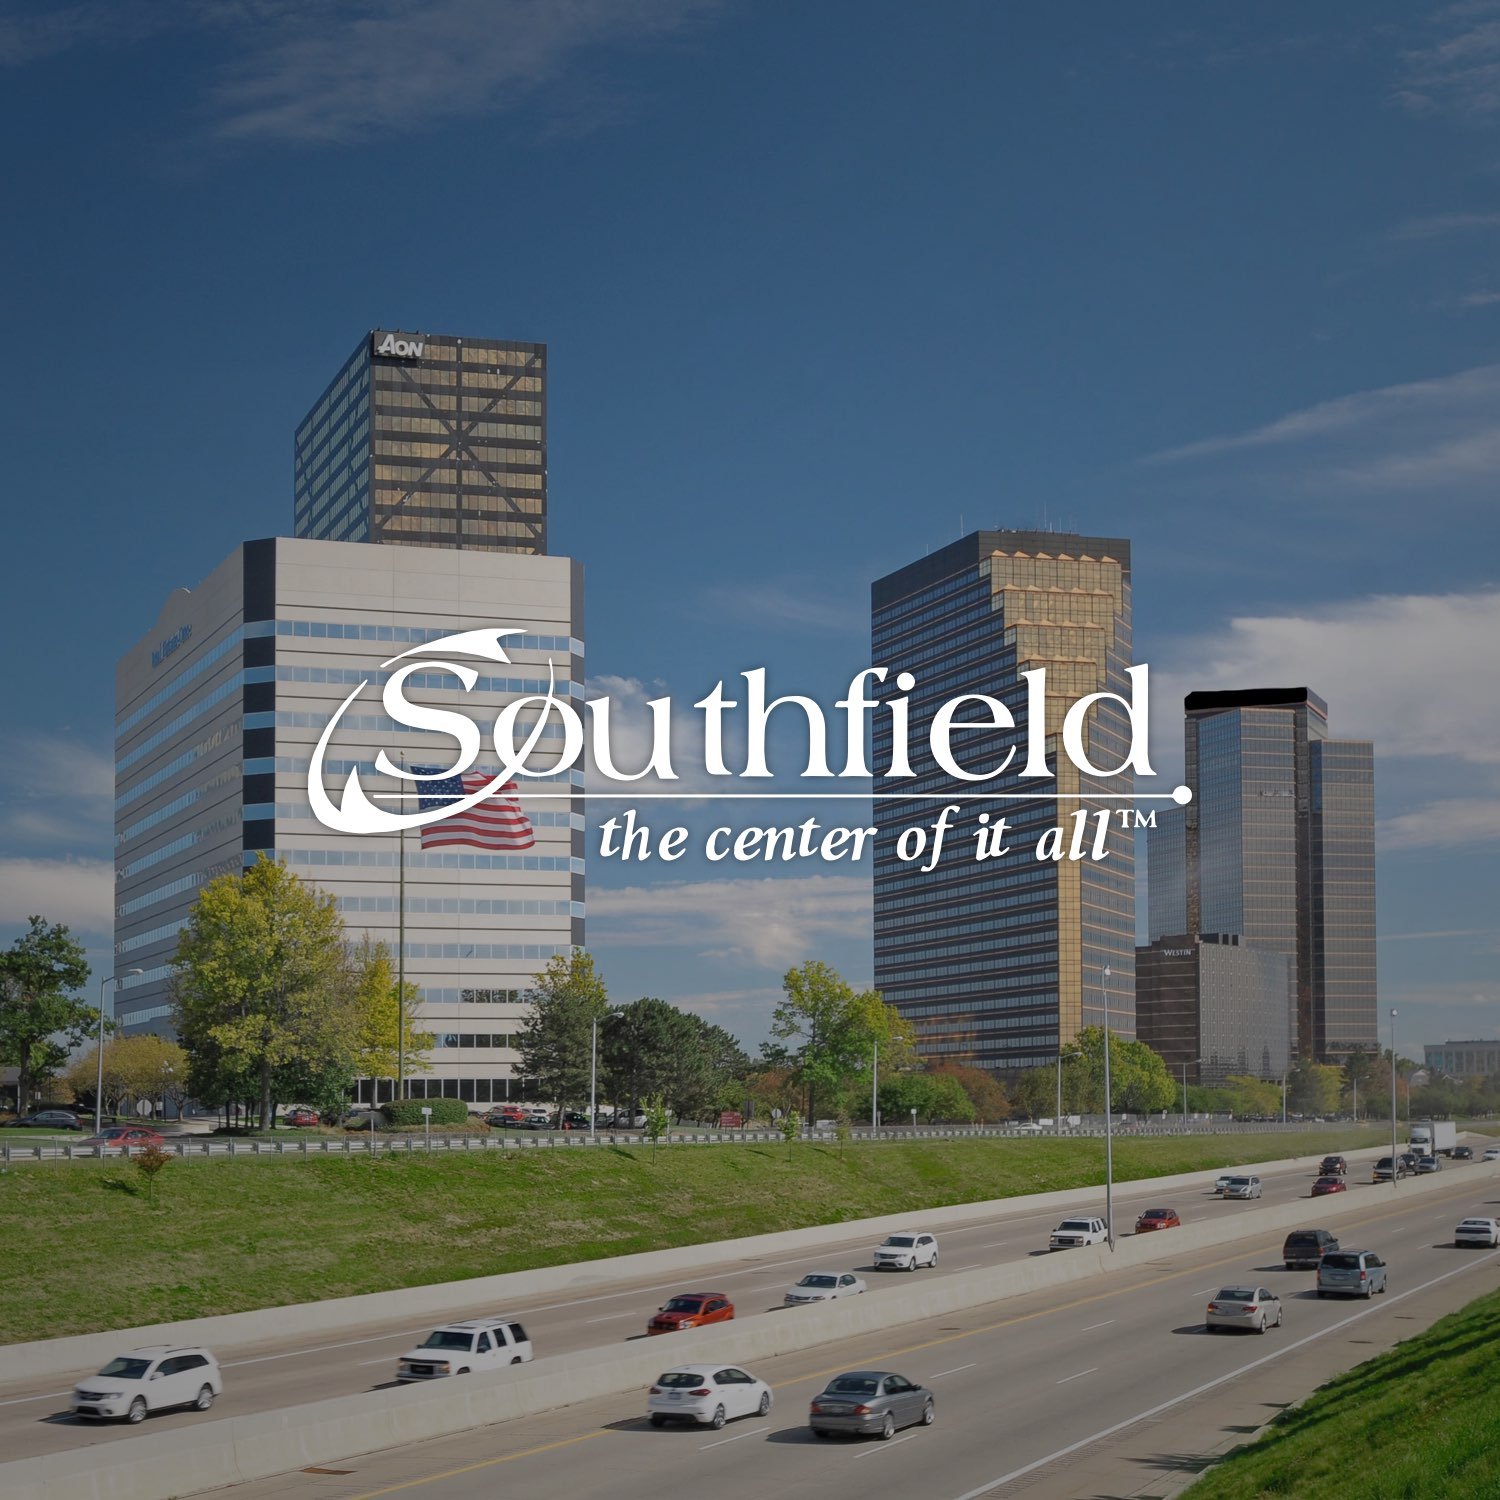 City of Southfield Skyline